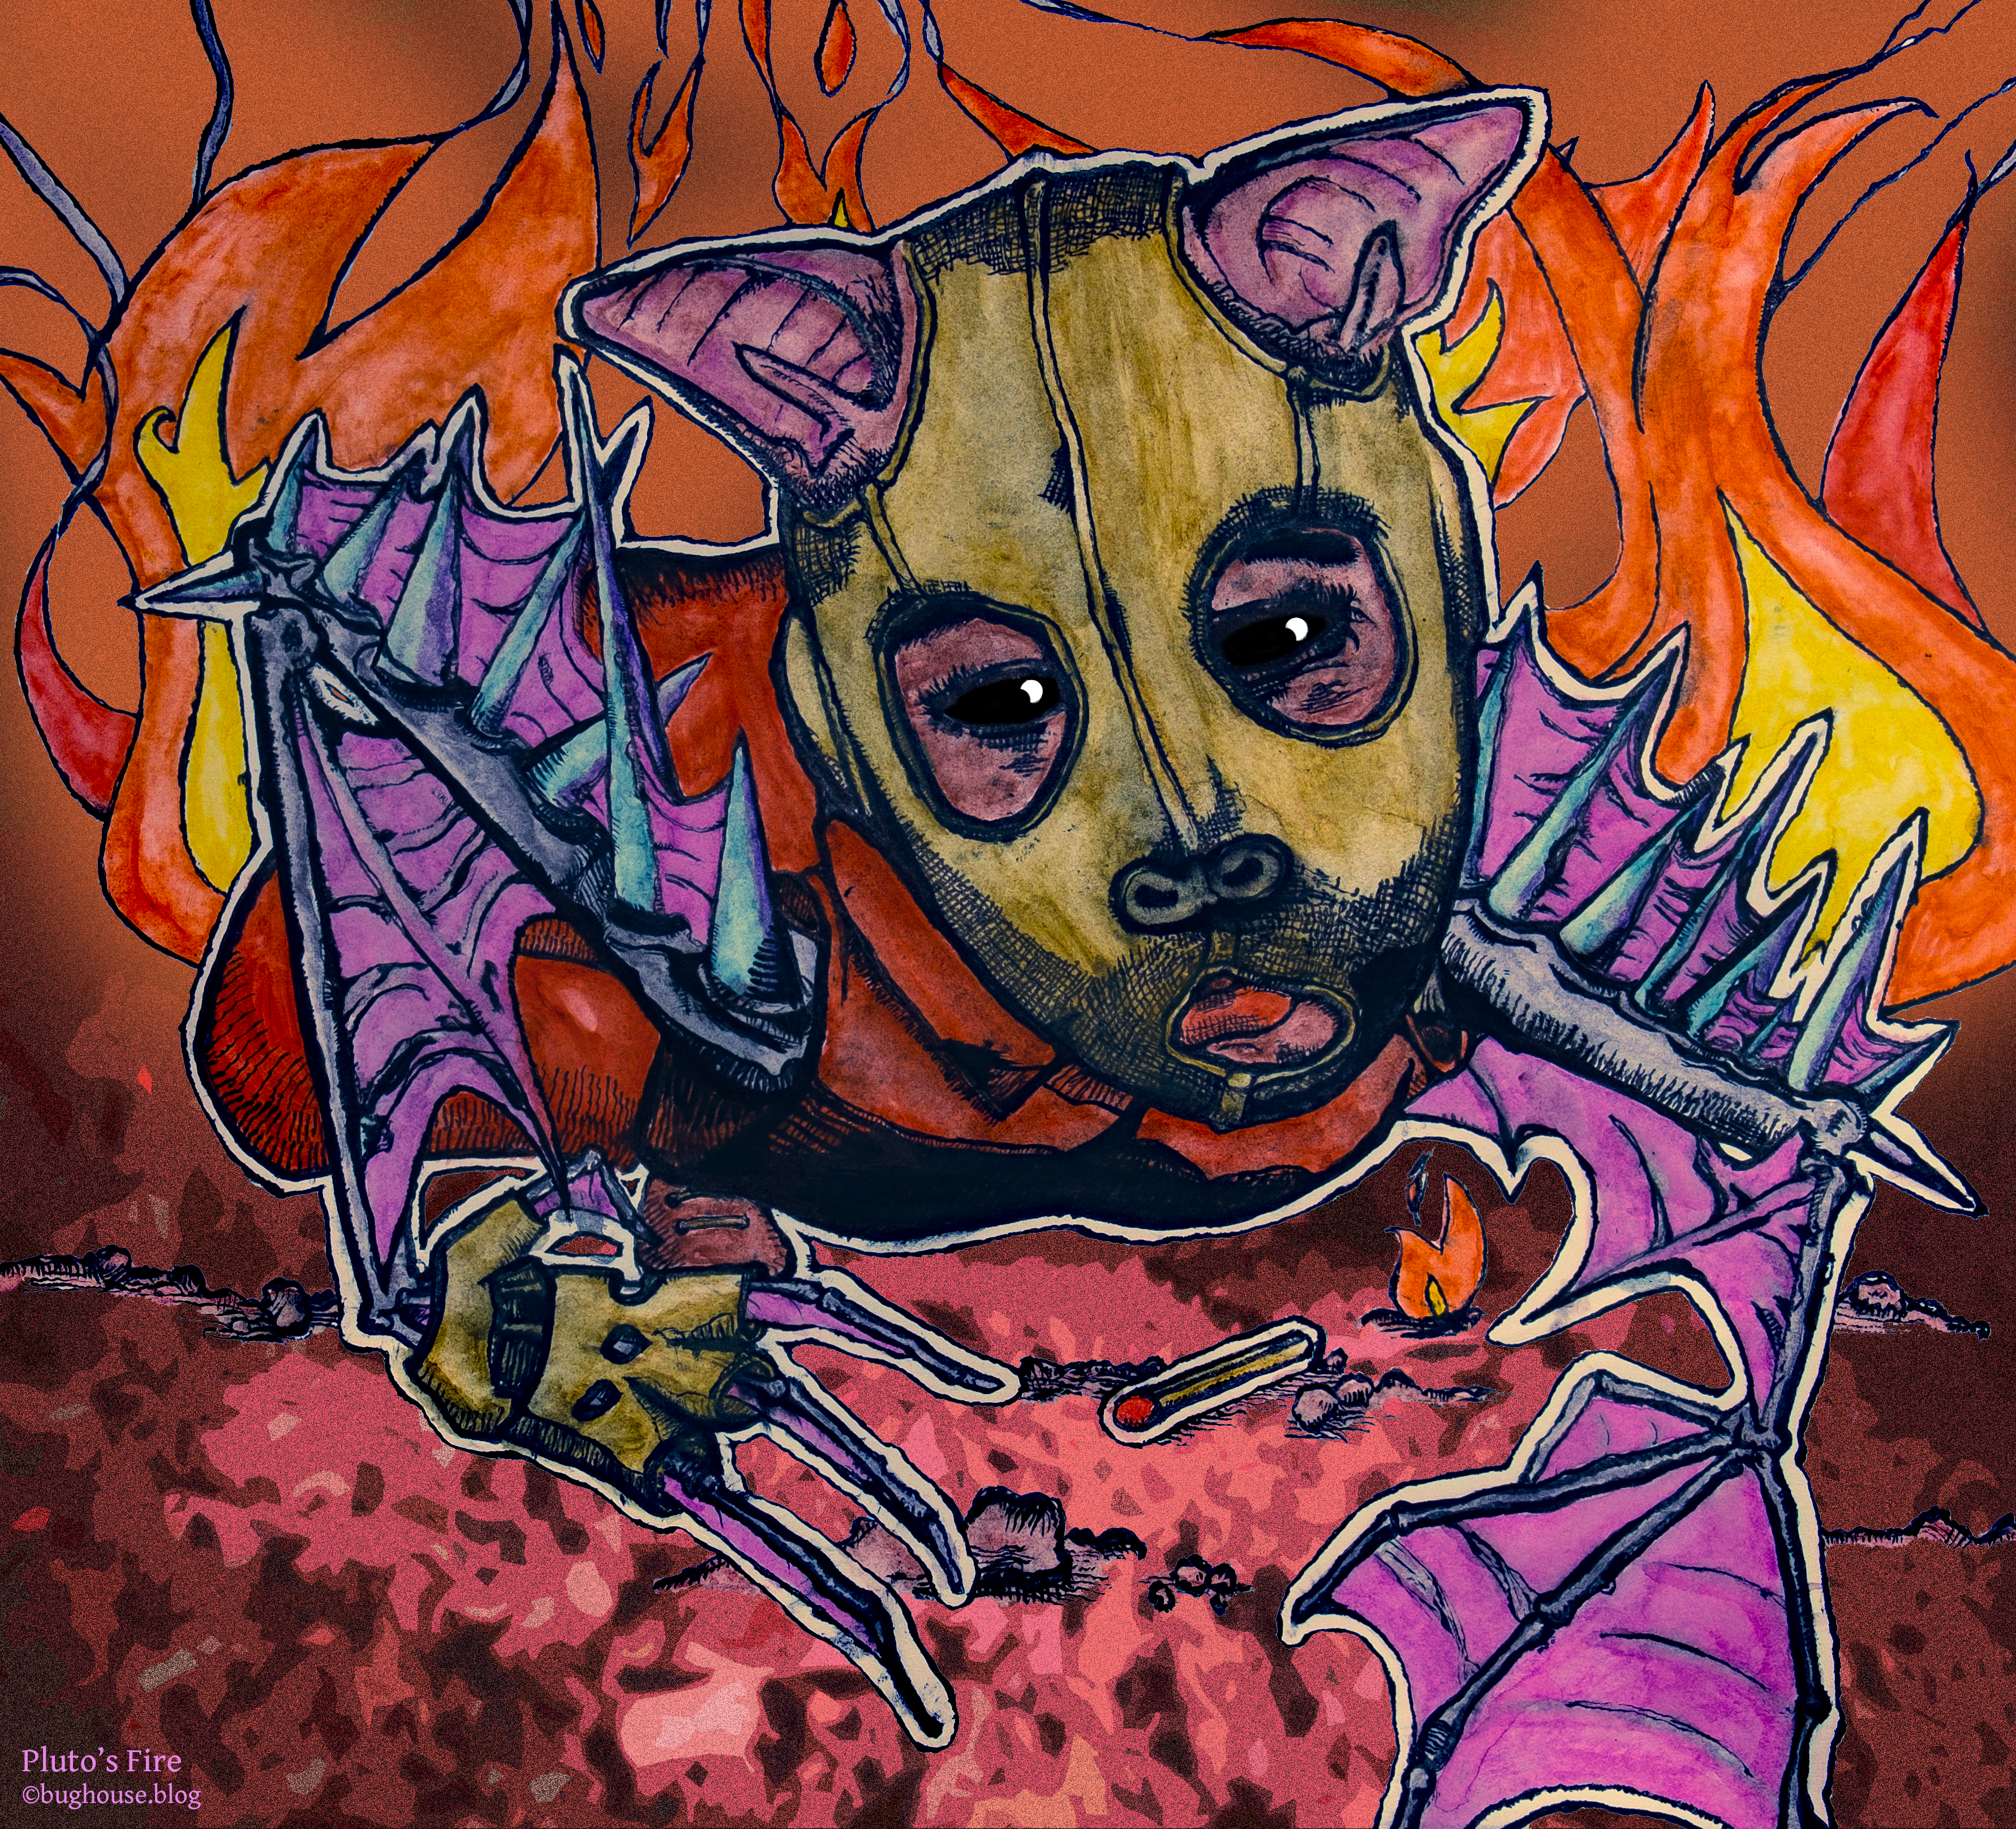 Drawing of creepy masked pyromaniac little bat boy, inspired by Pluto's Fire and The Ring Two